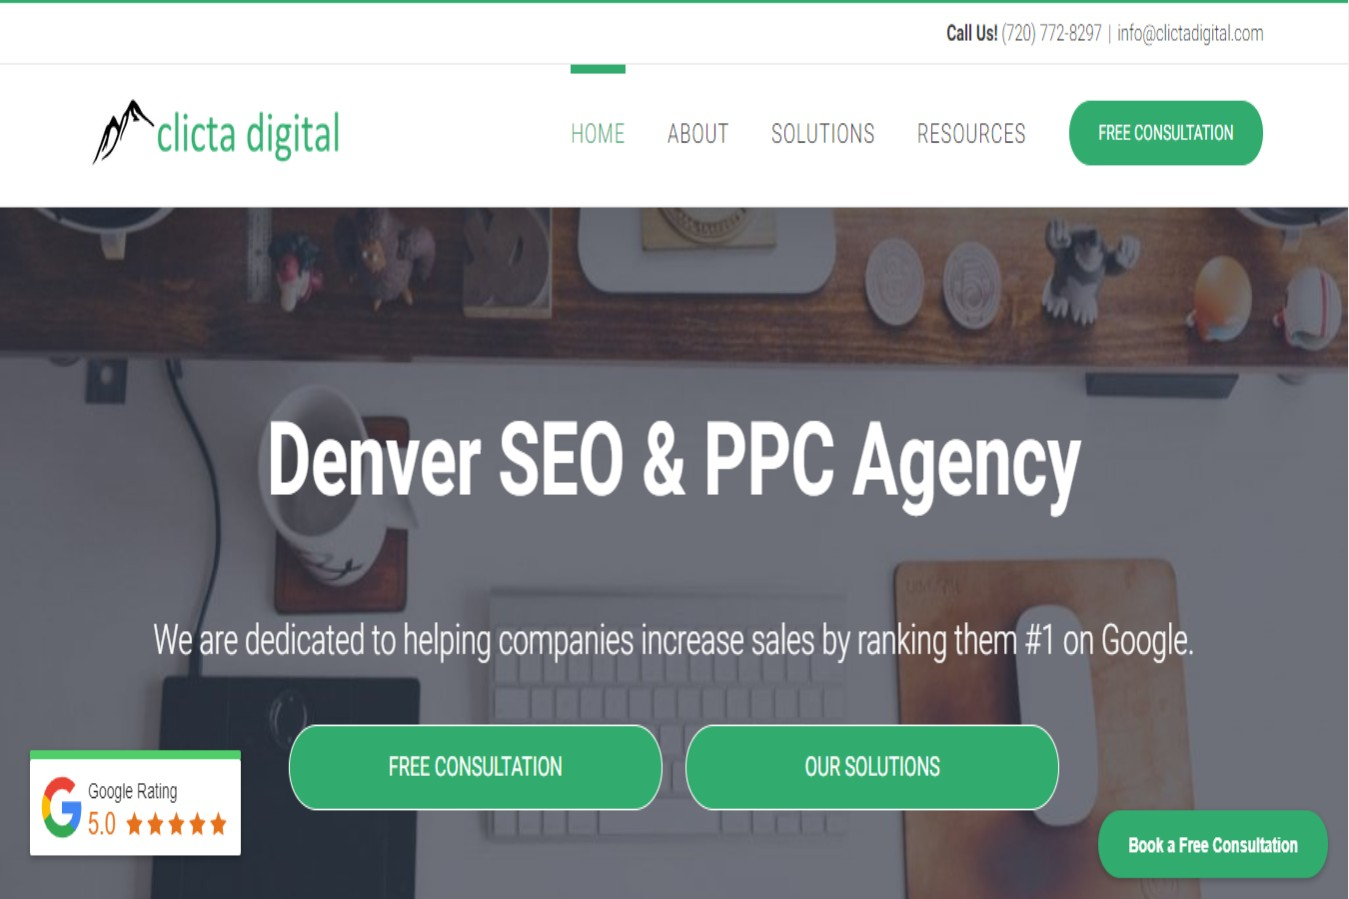 Top-rated digital marketer located in Denver, CO